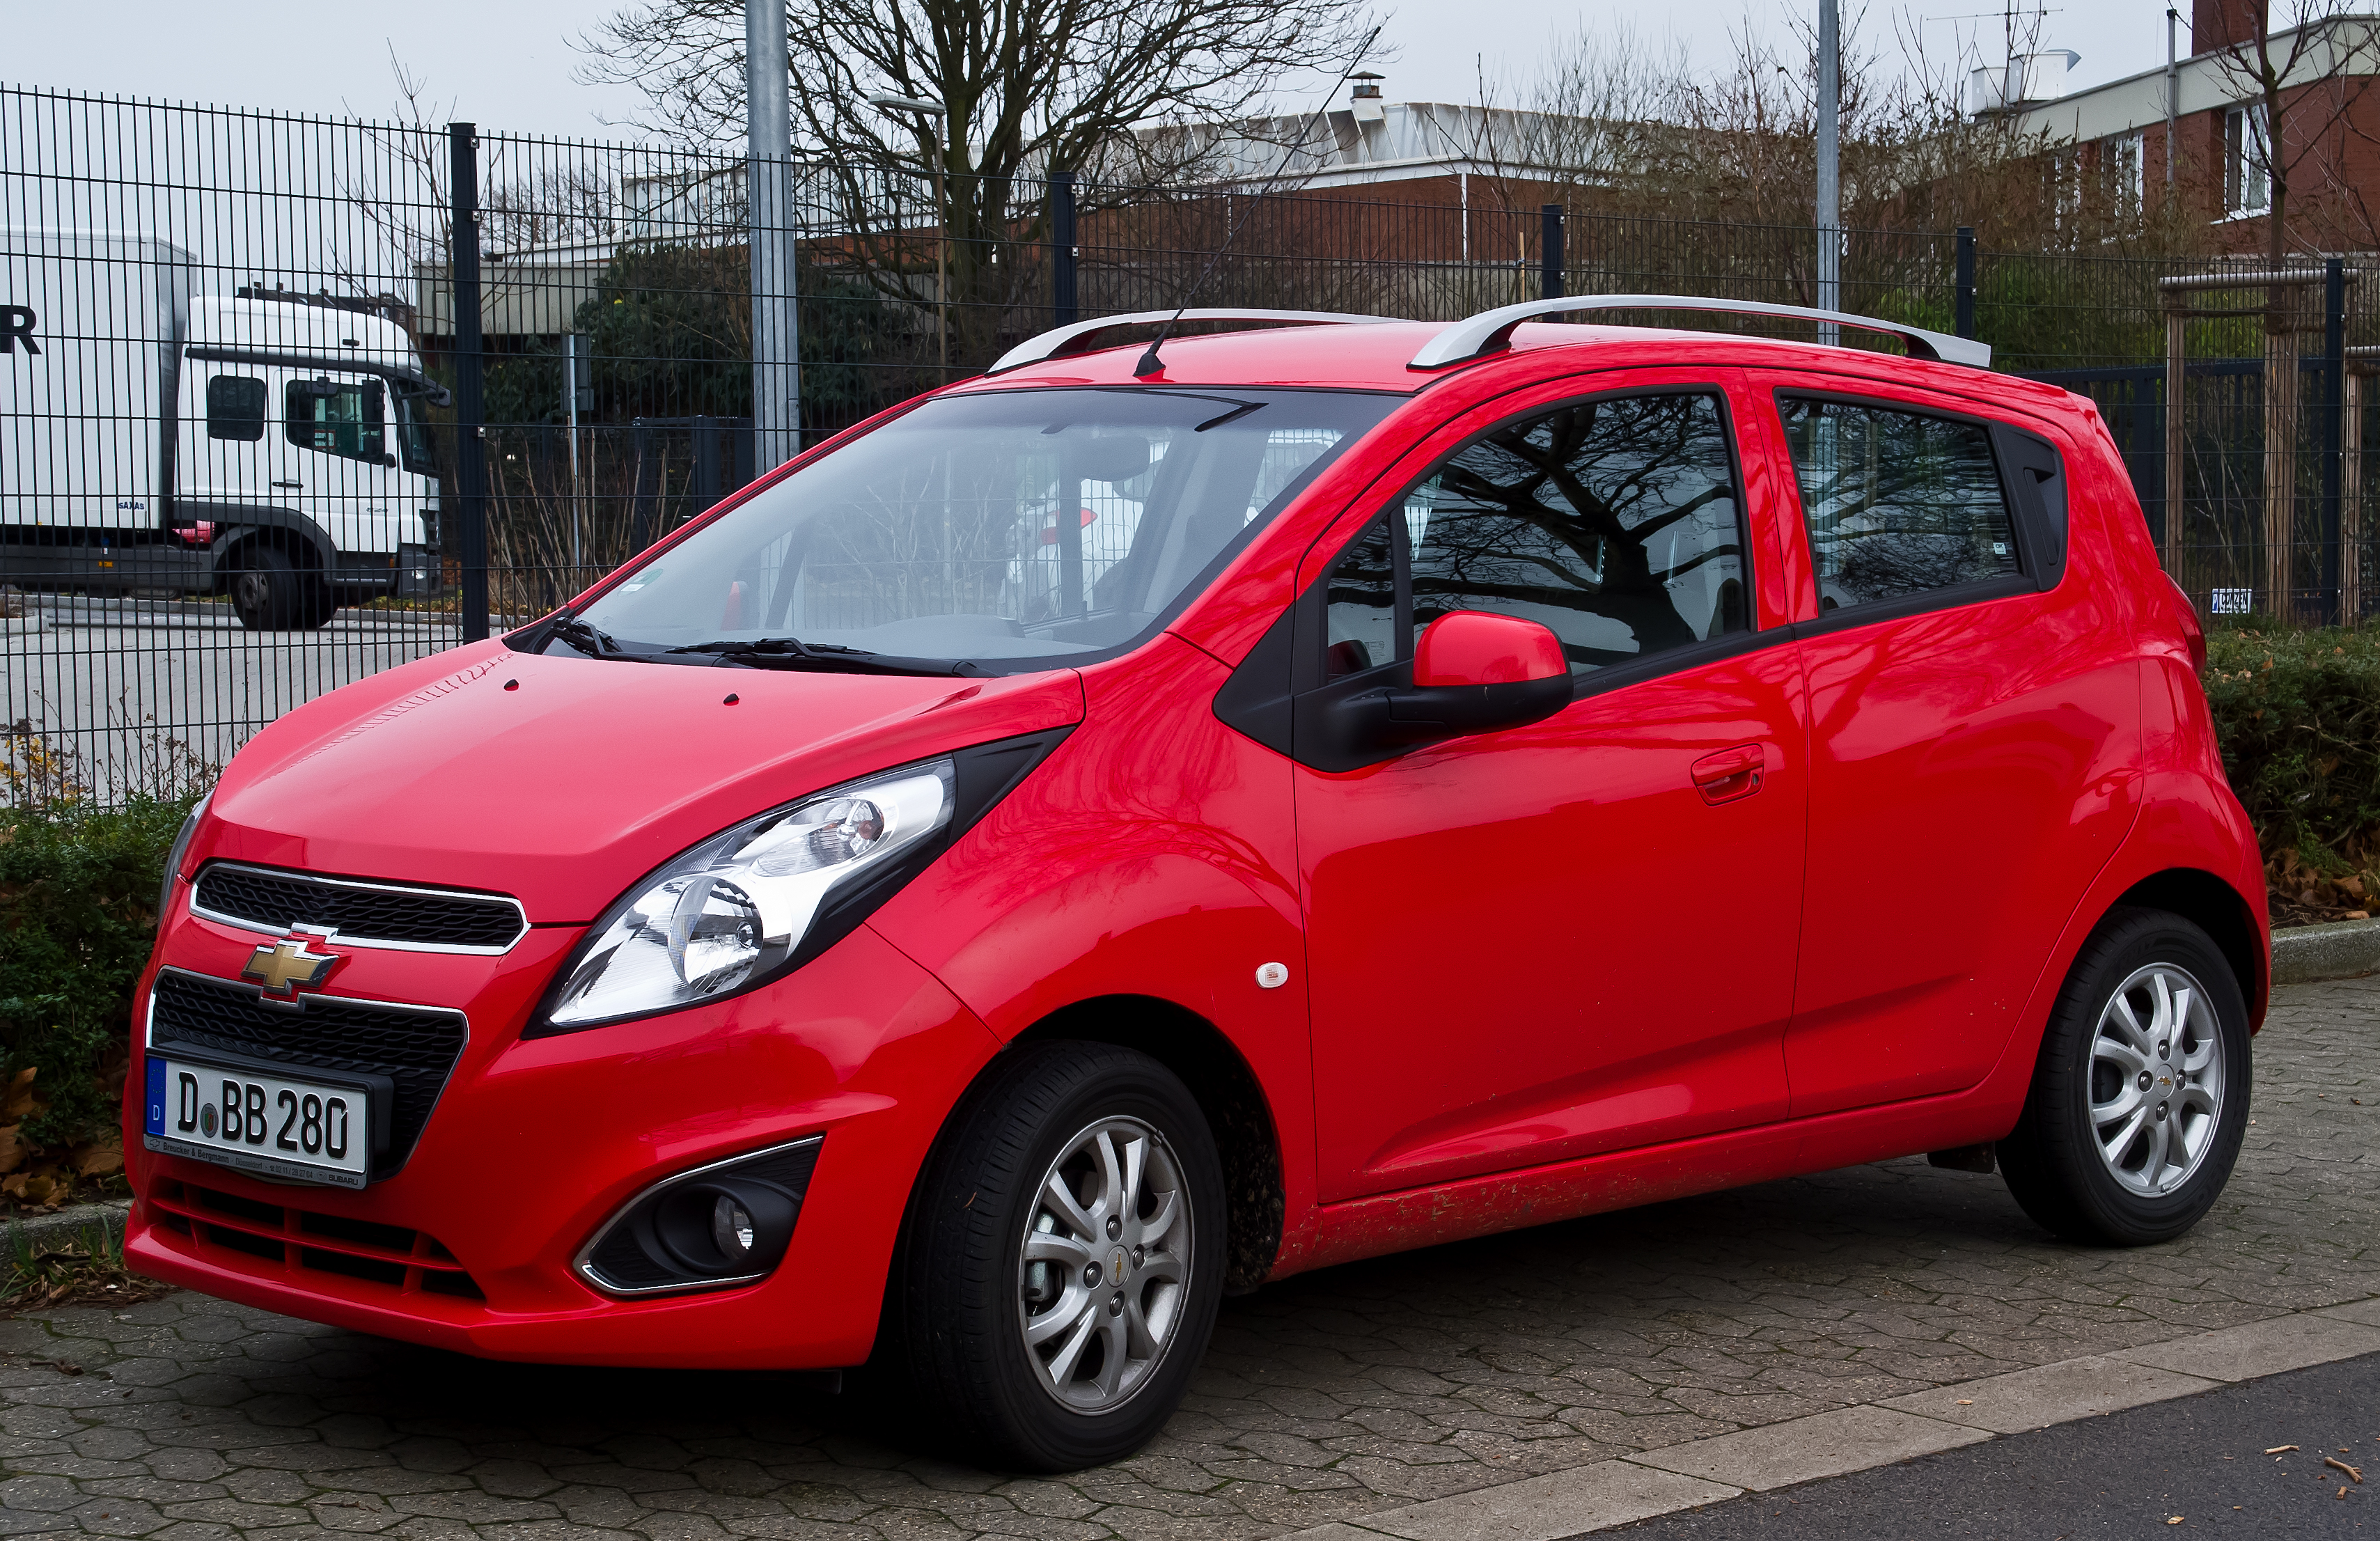 stays hatchback activ roadshow chevrolet gets facelift spark news chevy a